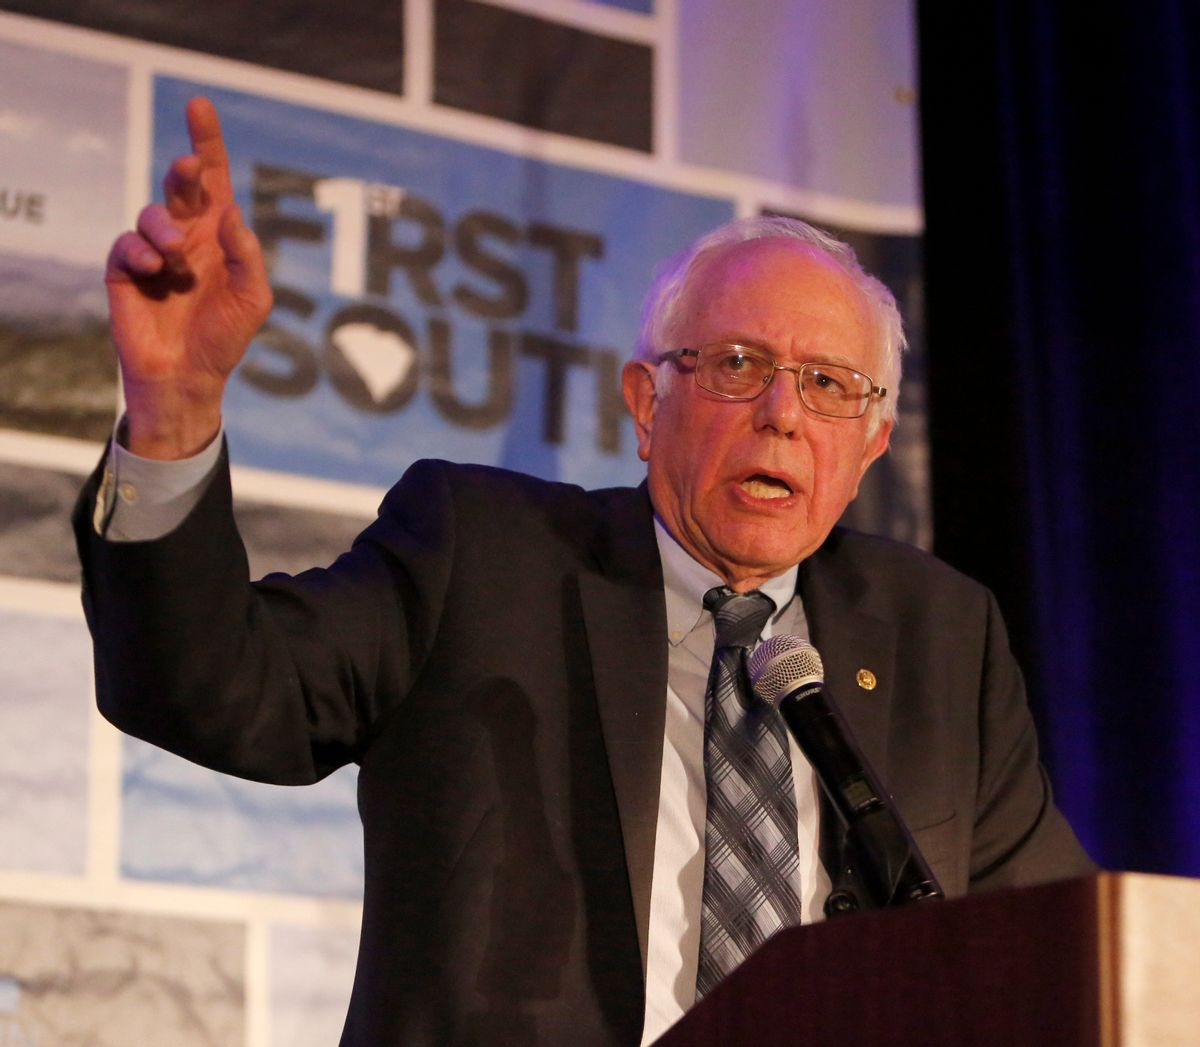 Democratic presidential candidate Sen. Bernie Sanders, I-Vt., speaks during the First in the South Dinner at the Charleston Mariott Saturday, Jan. 16, 2016, in Charleston, S.C. (AP Photo/Mic Smith) (AP)